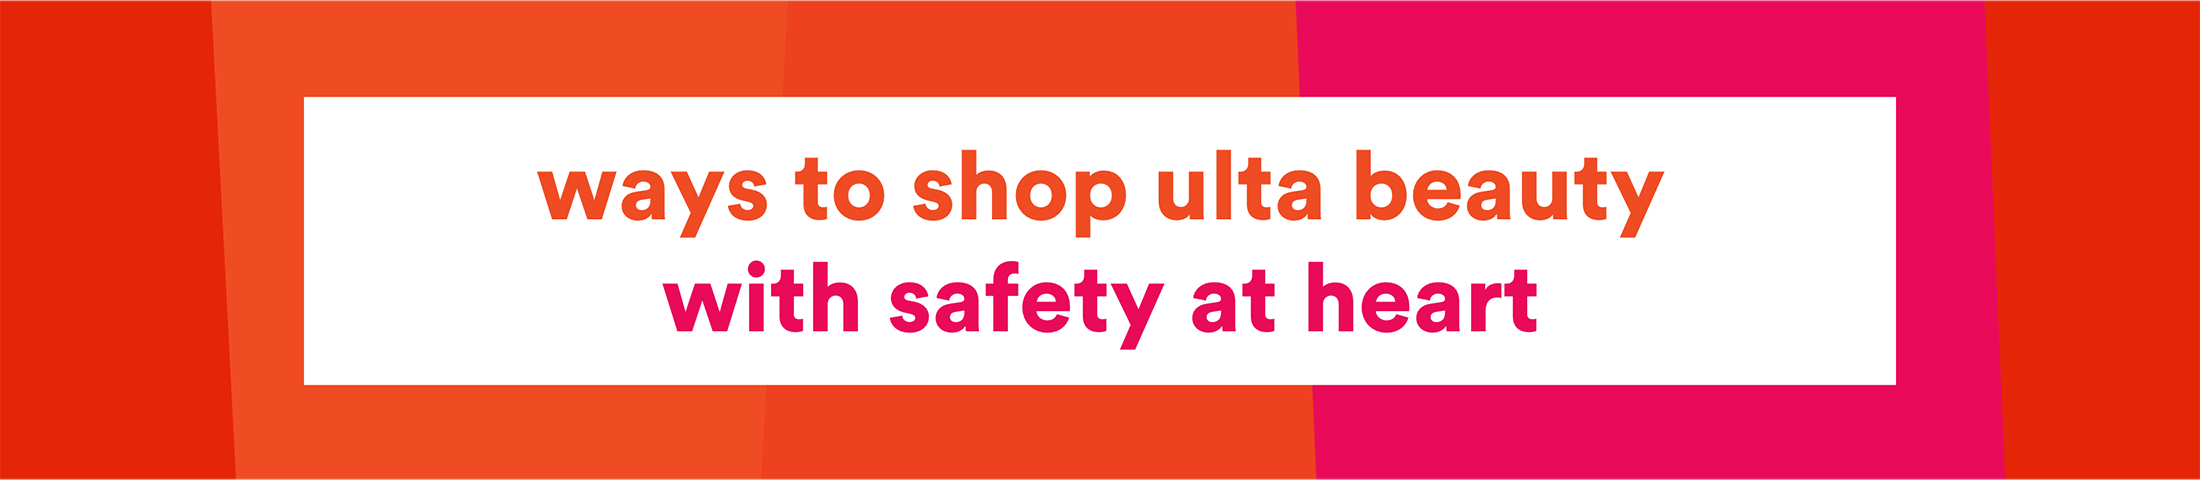 Ways To Shop Ulta Beauty with Safety at Heart